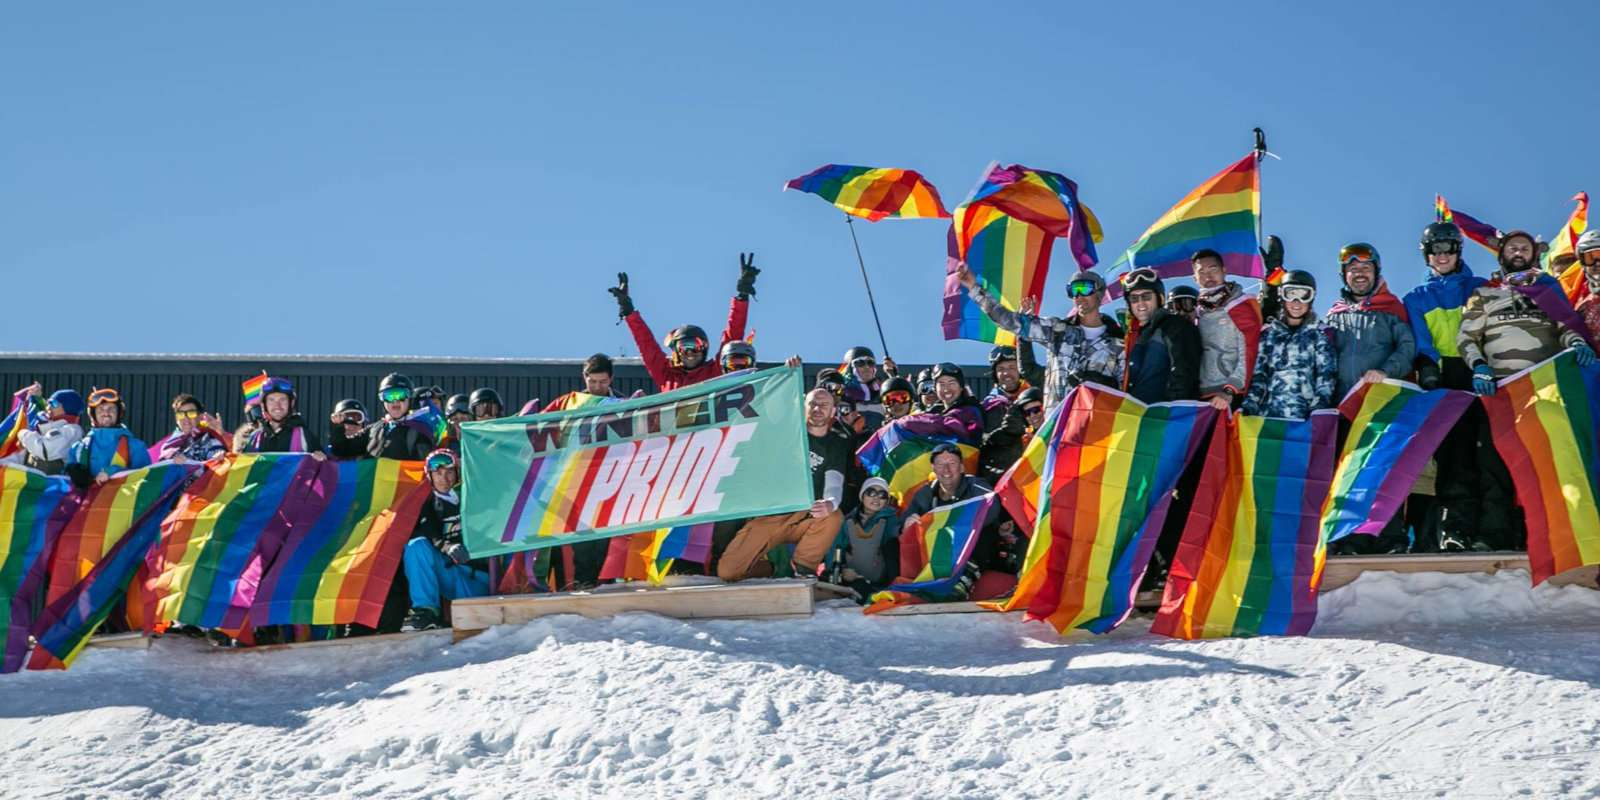 Queenstown in New Zealand is the adventure tourism capital of the world and also home to a fantastic winter pride gay skiing week